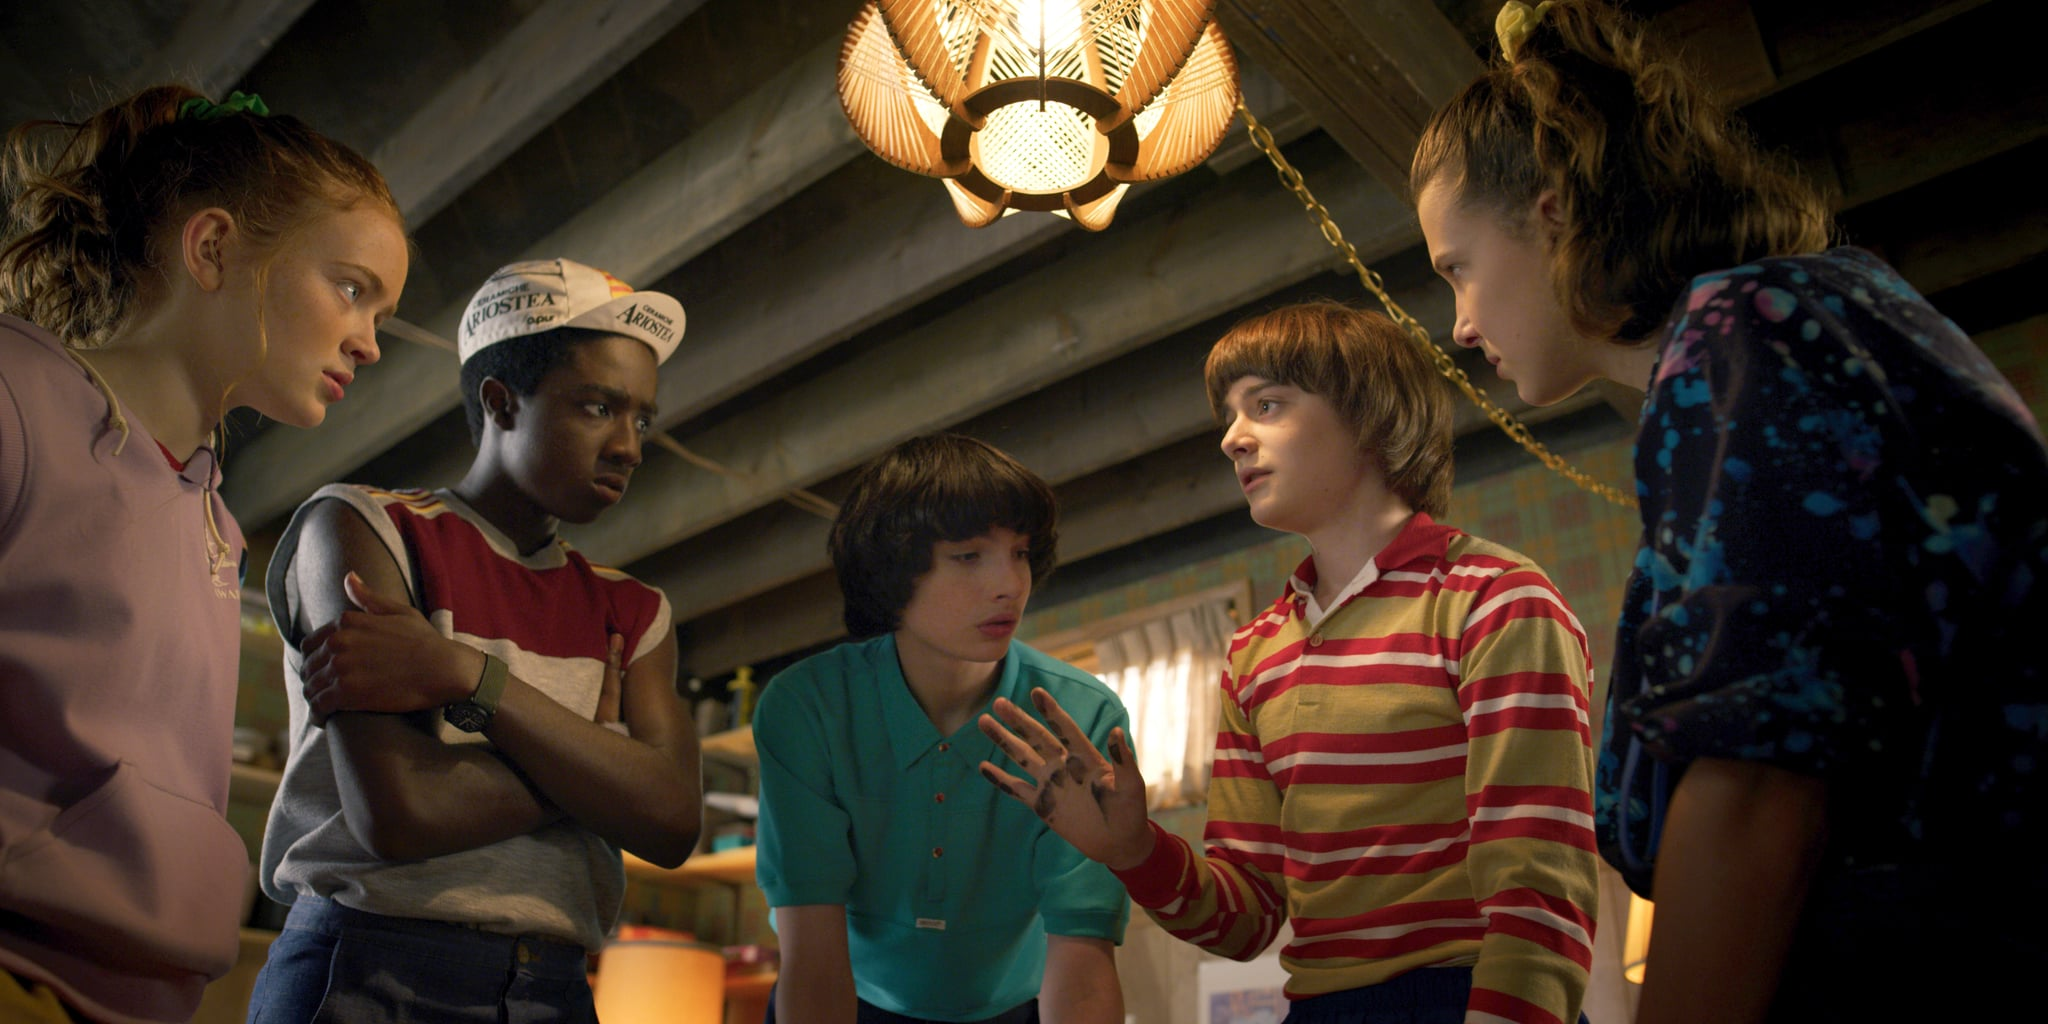 STRANGER THINGS, from left: Sadie Sink, Caleb McLaughlin, Finn Wolfhard, Noah Schnapp, Millie Bobby Brown, (Season 3, aired July 4, 2019), ph: Netflix / Courtesy Everett Collection